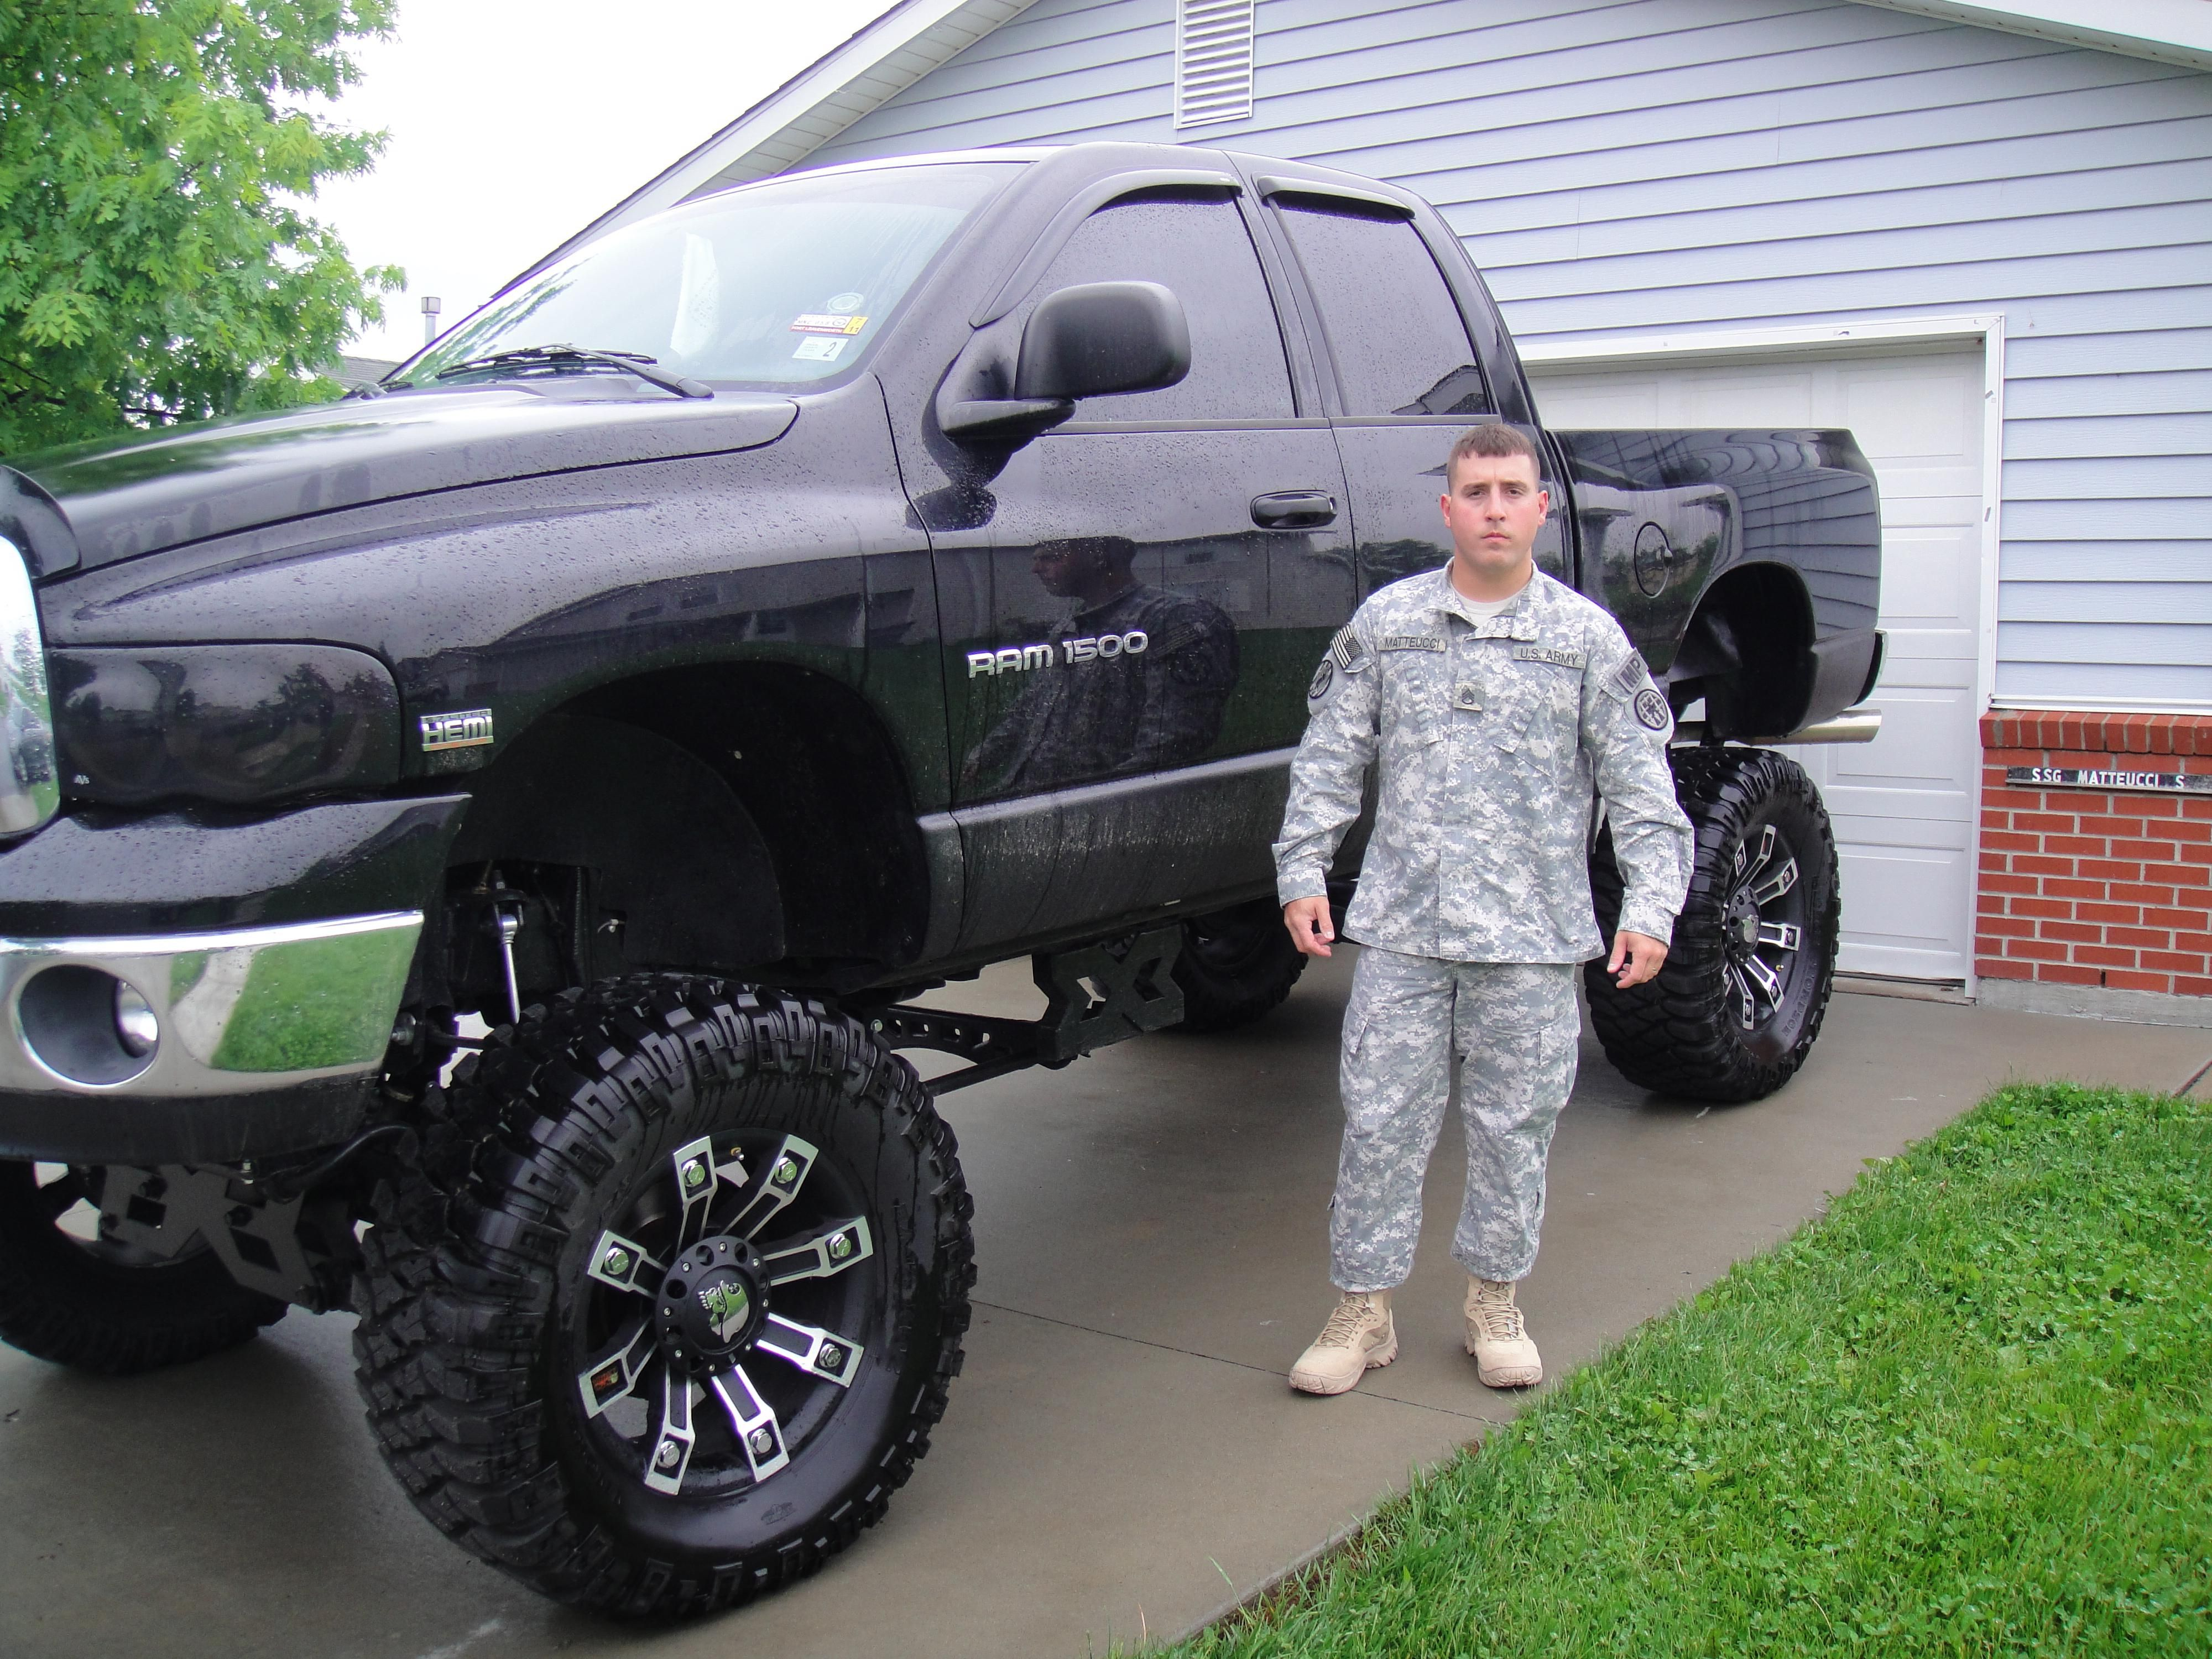 proud owner of highly lifted black dodge ram truck | Dodge Ram,Chevy